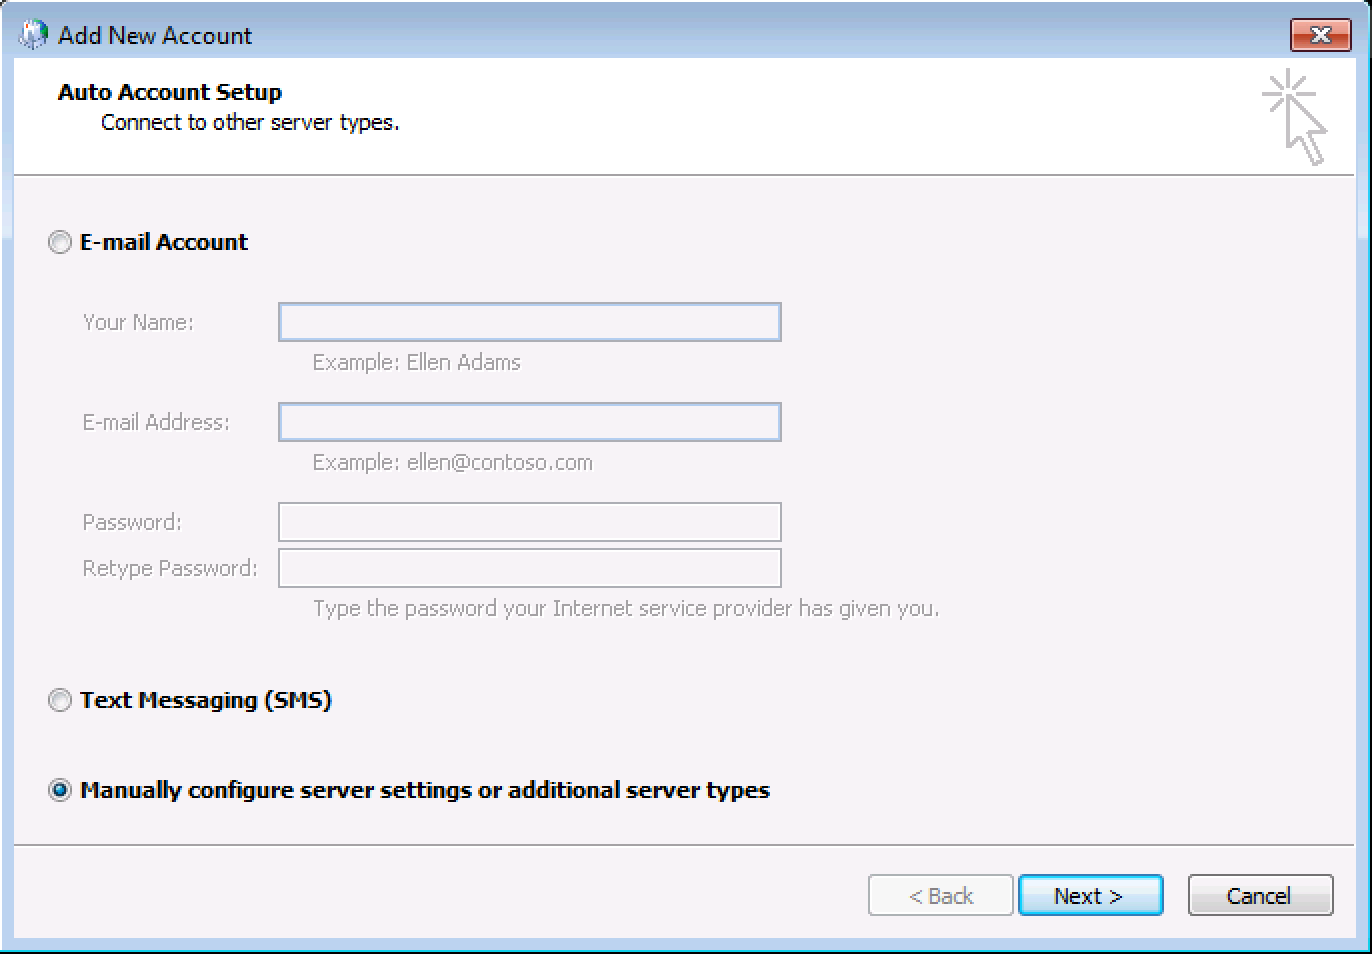 Select Manually configure server settings or additional server types, click Next